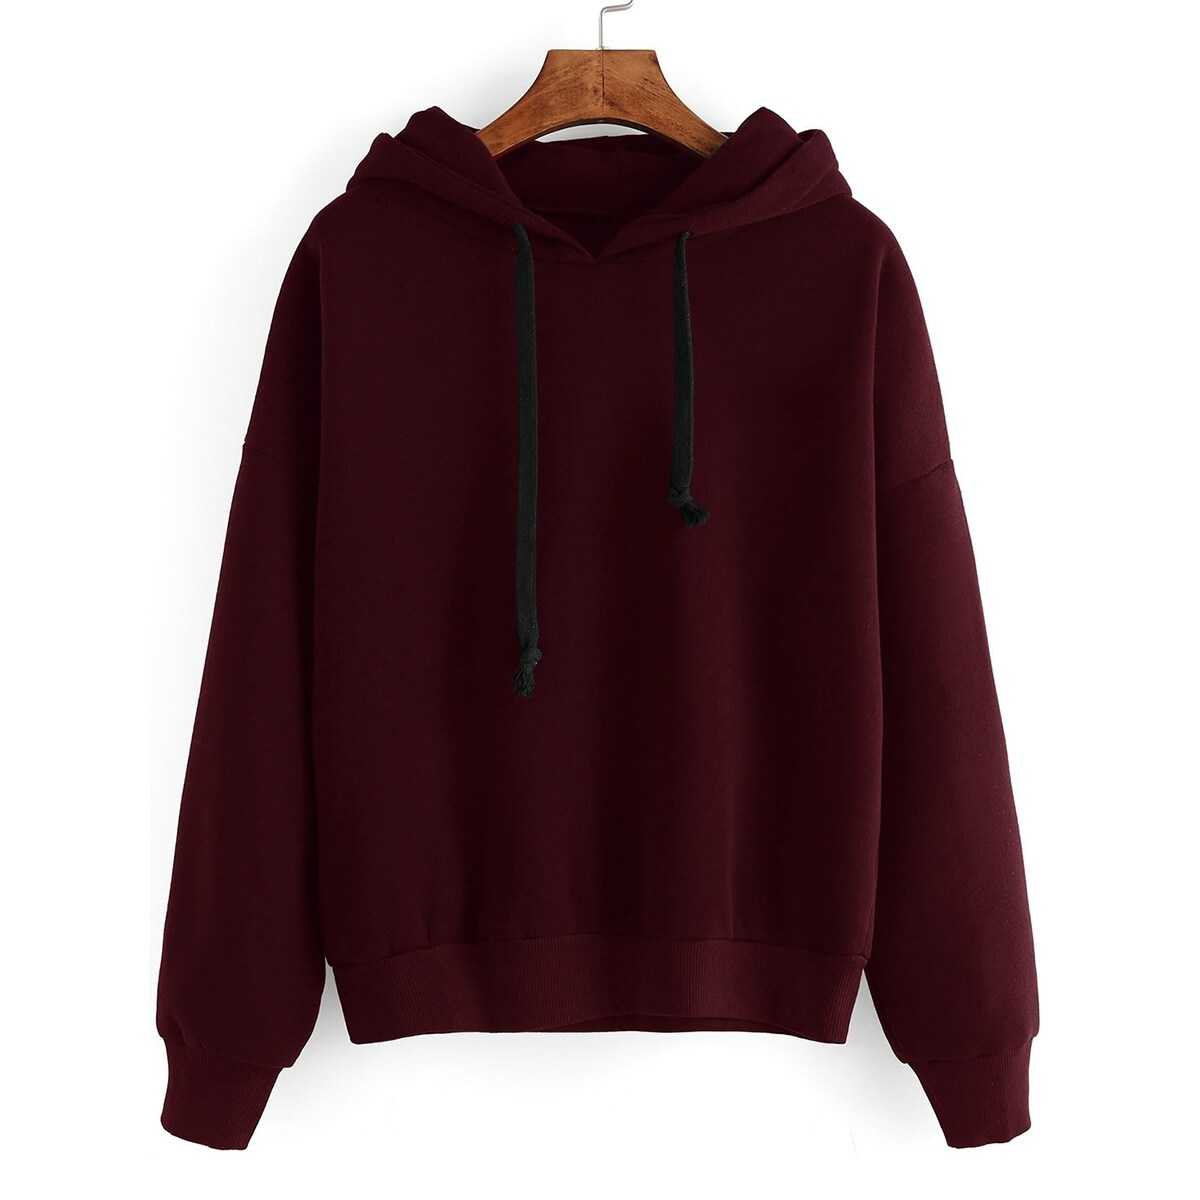 f6430c94ec17 Contrast Drawstring Drop Shoulder Hooded Sweatshirt Shein | GOOFASH SHOP